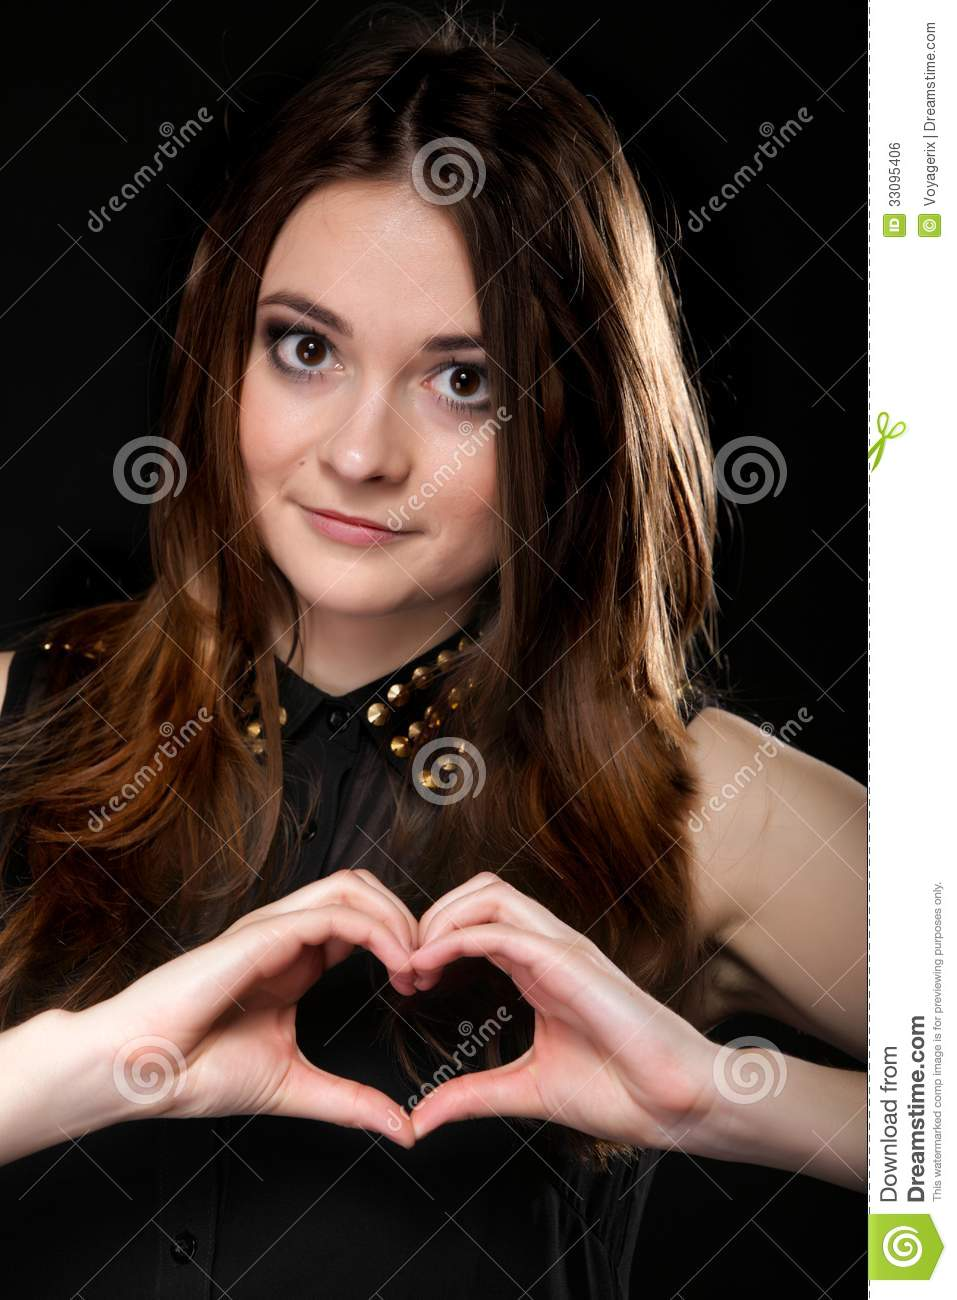 Girl doing heart shape love symbol with her hands.